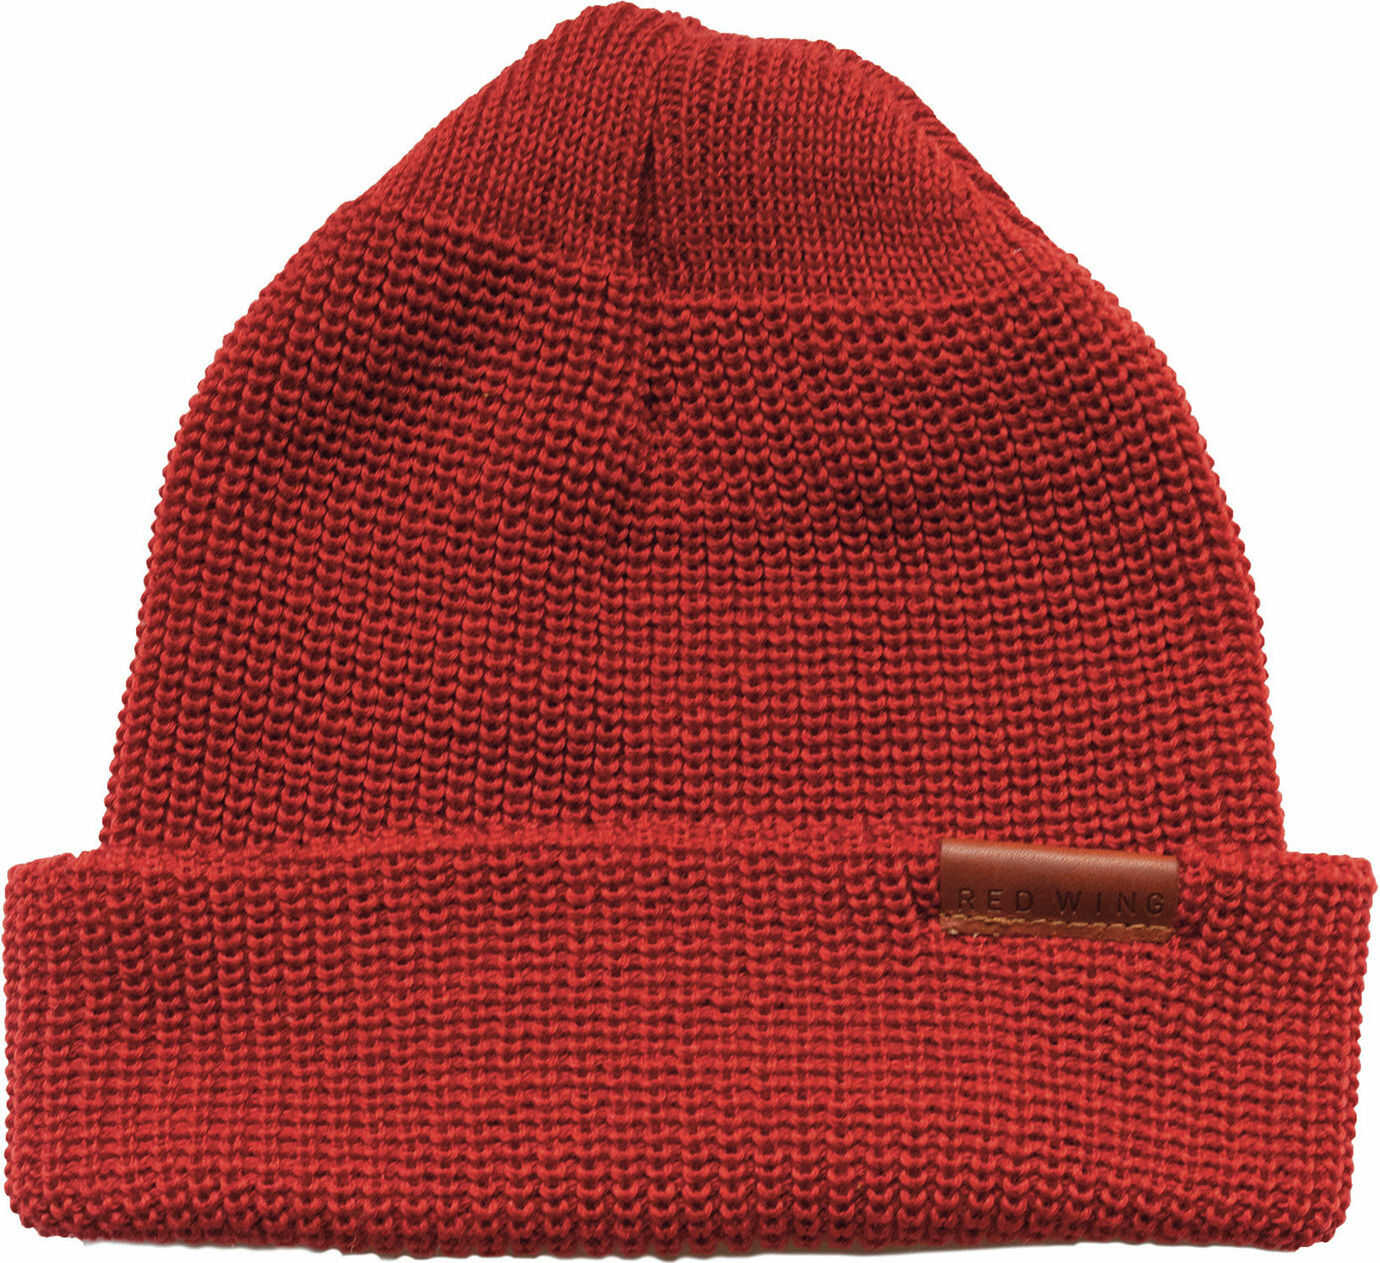 Beanie Hat In Red thumbnail